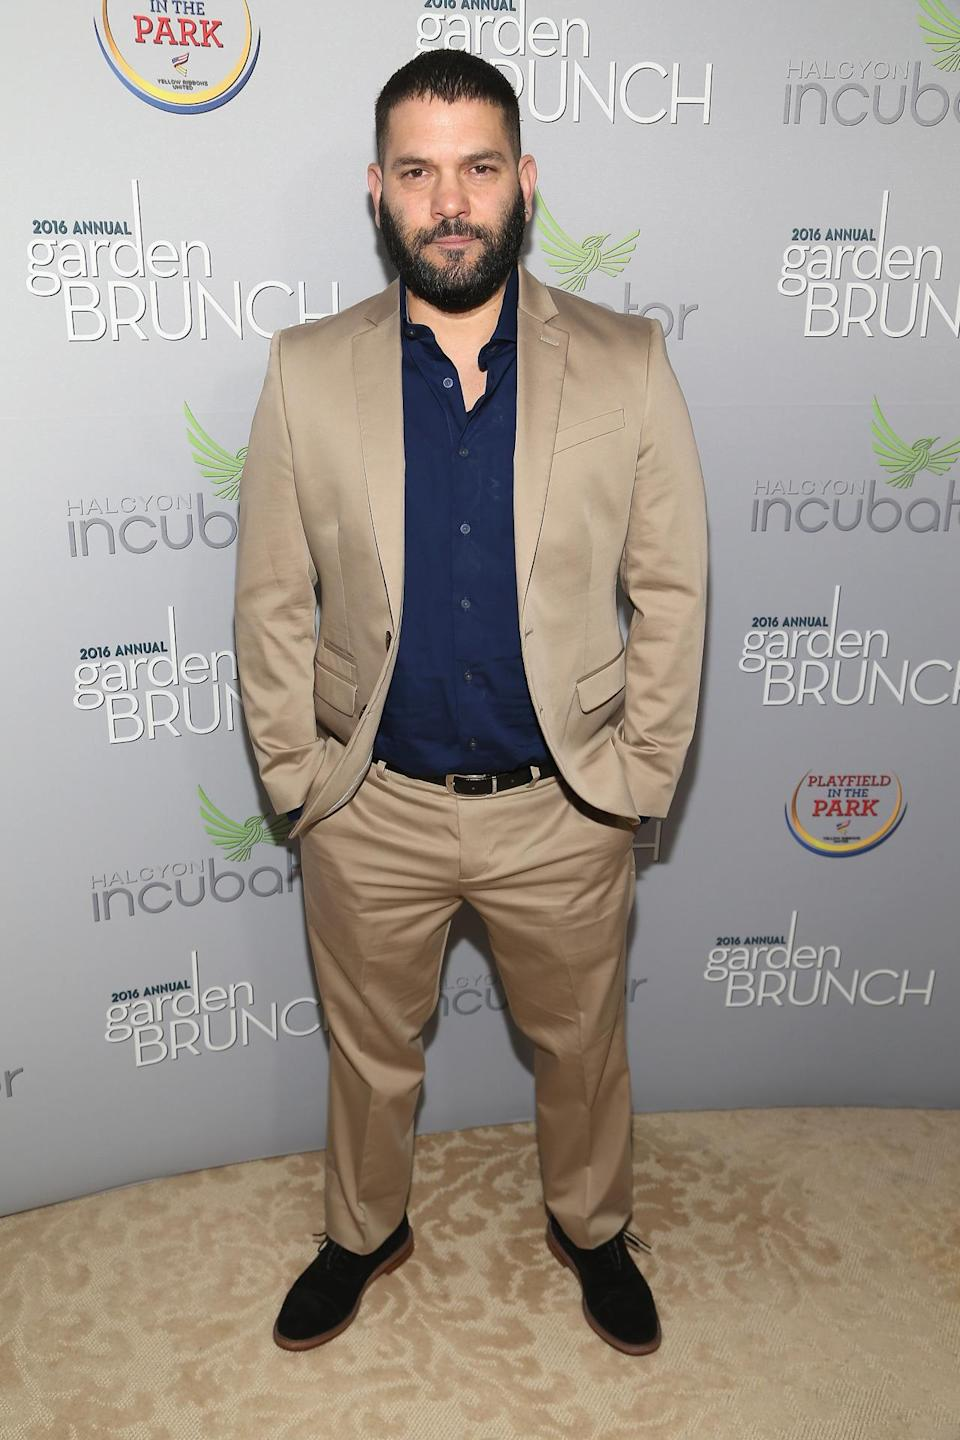 <p>Actor Guillermo Díaz attends the Garden Brunch prior to the 102nd White House Correspondents' Dinner, April 30. <i>(Photo: Paul Morigi/WireImage)</i></p>